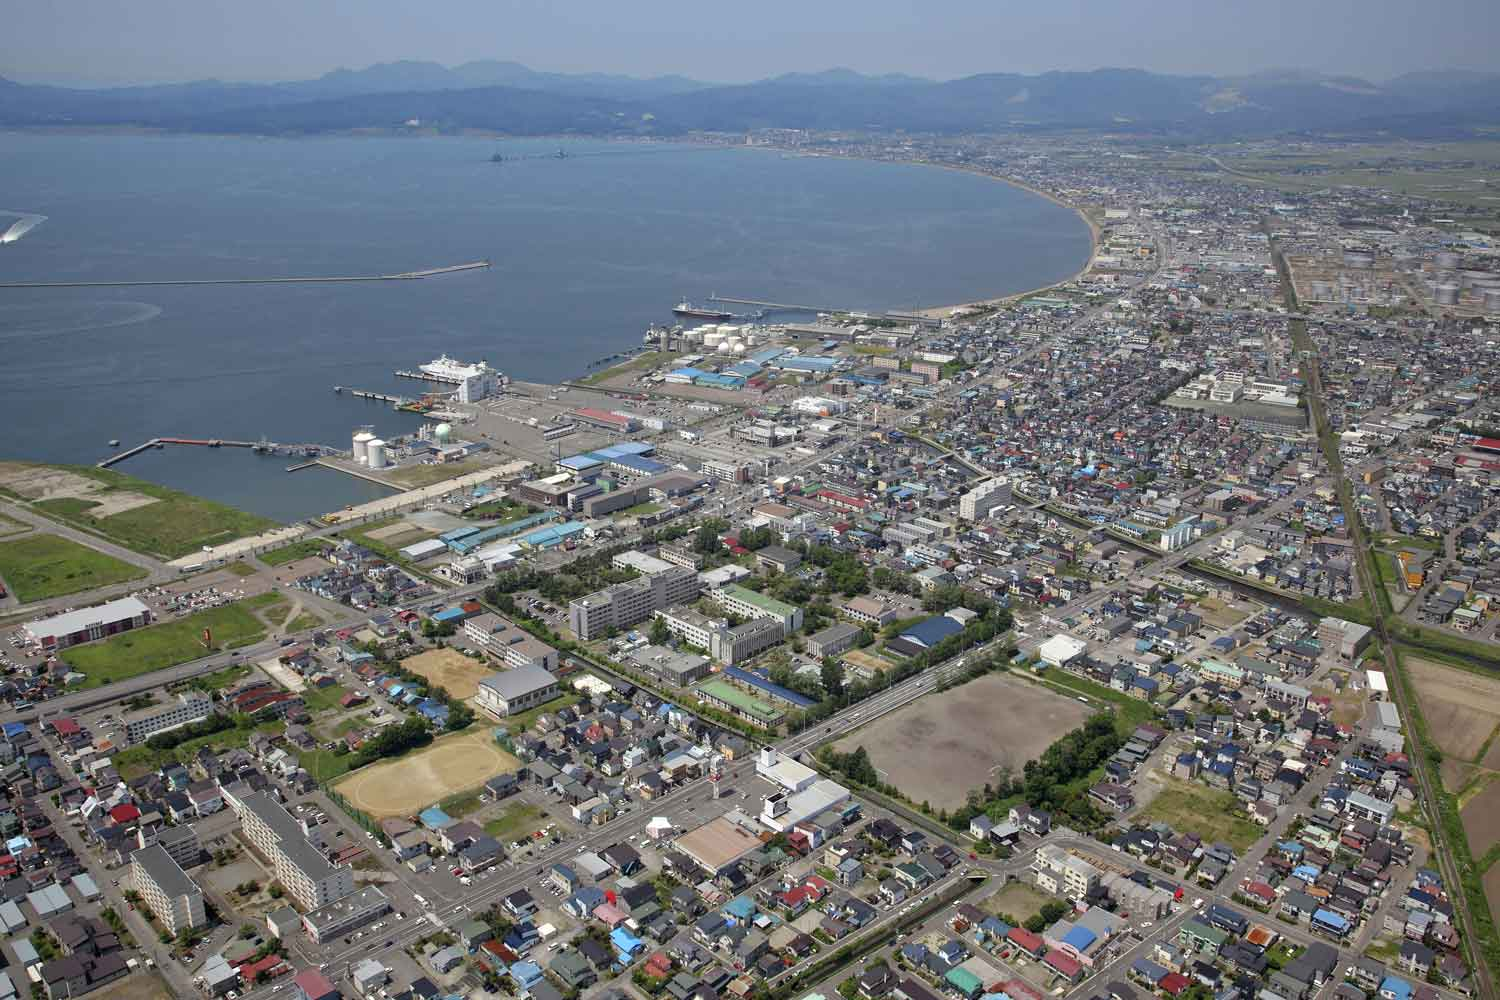 hakodate_campus of Hokudai